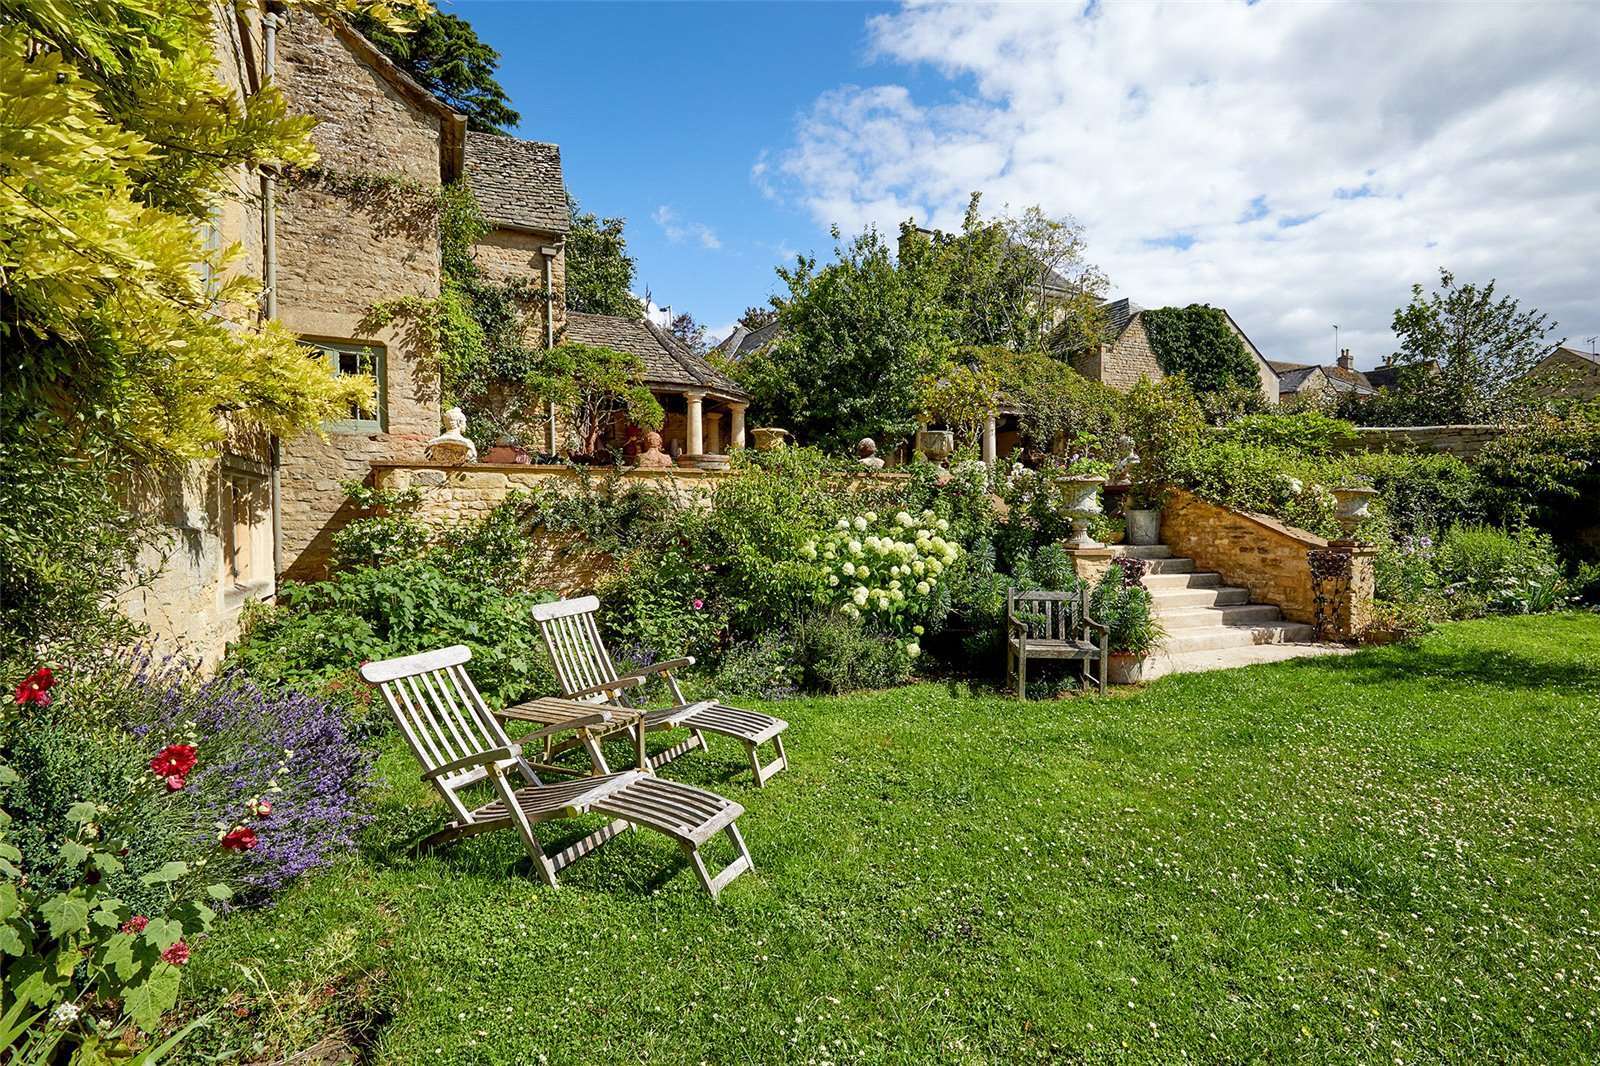 The Manor House, Chipping Norton, Oxfordshire - Garden